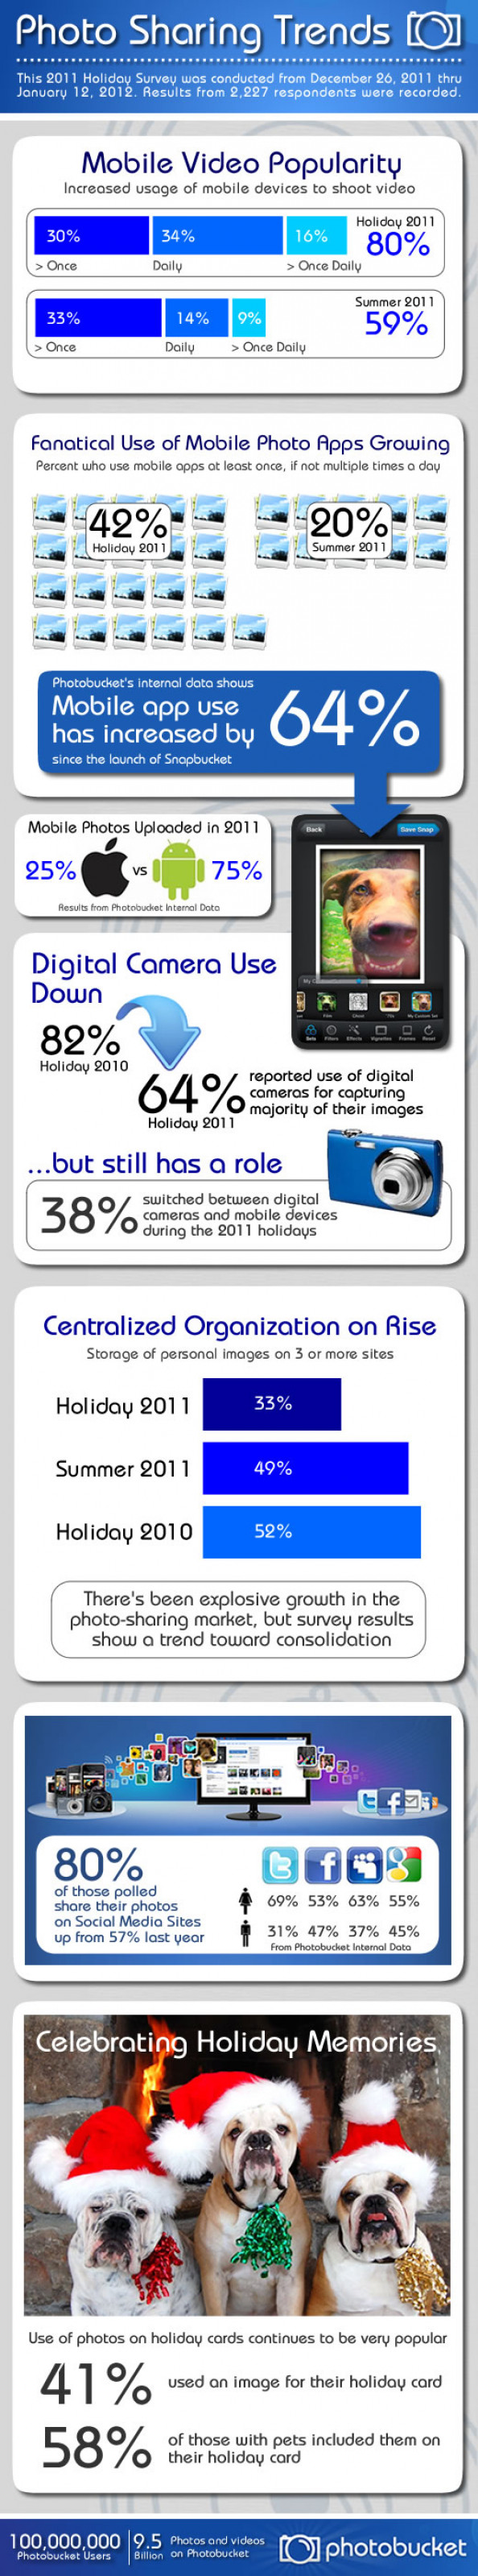 Photo Sharing Trends Infographic